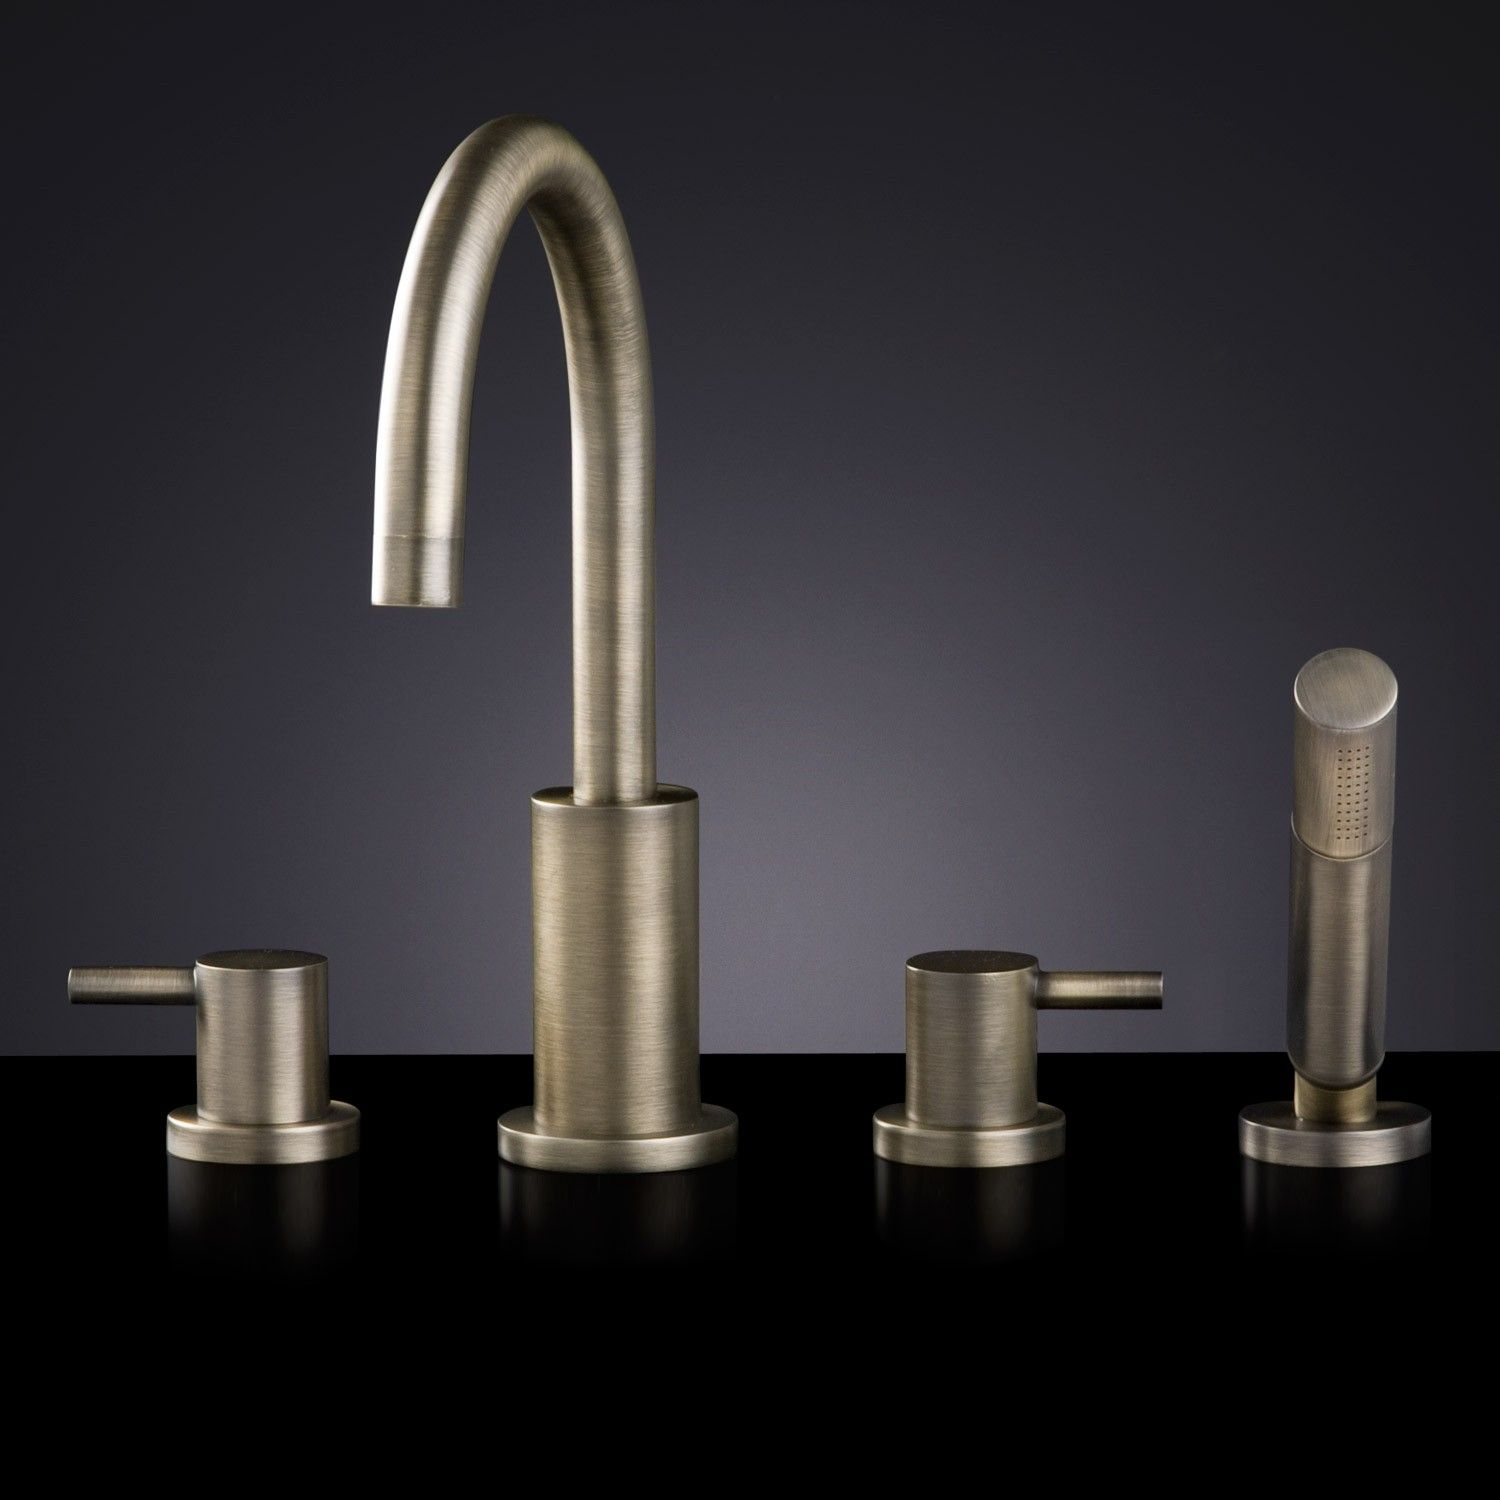 Rotunda Roman Tub Faucet and Hand Shower | Faucet, Tubs and Roman